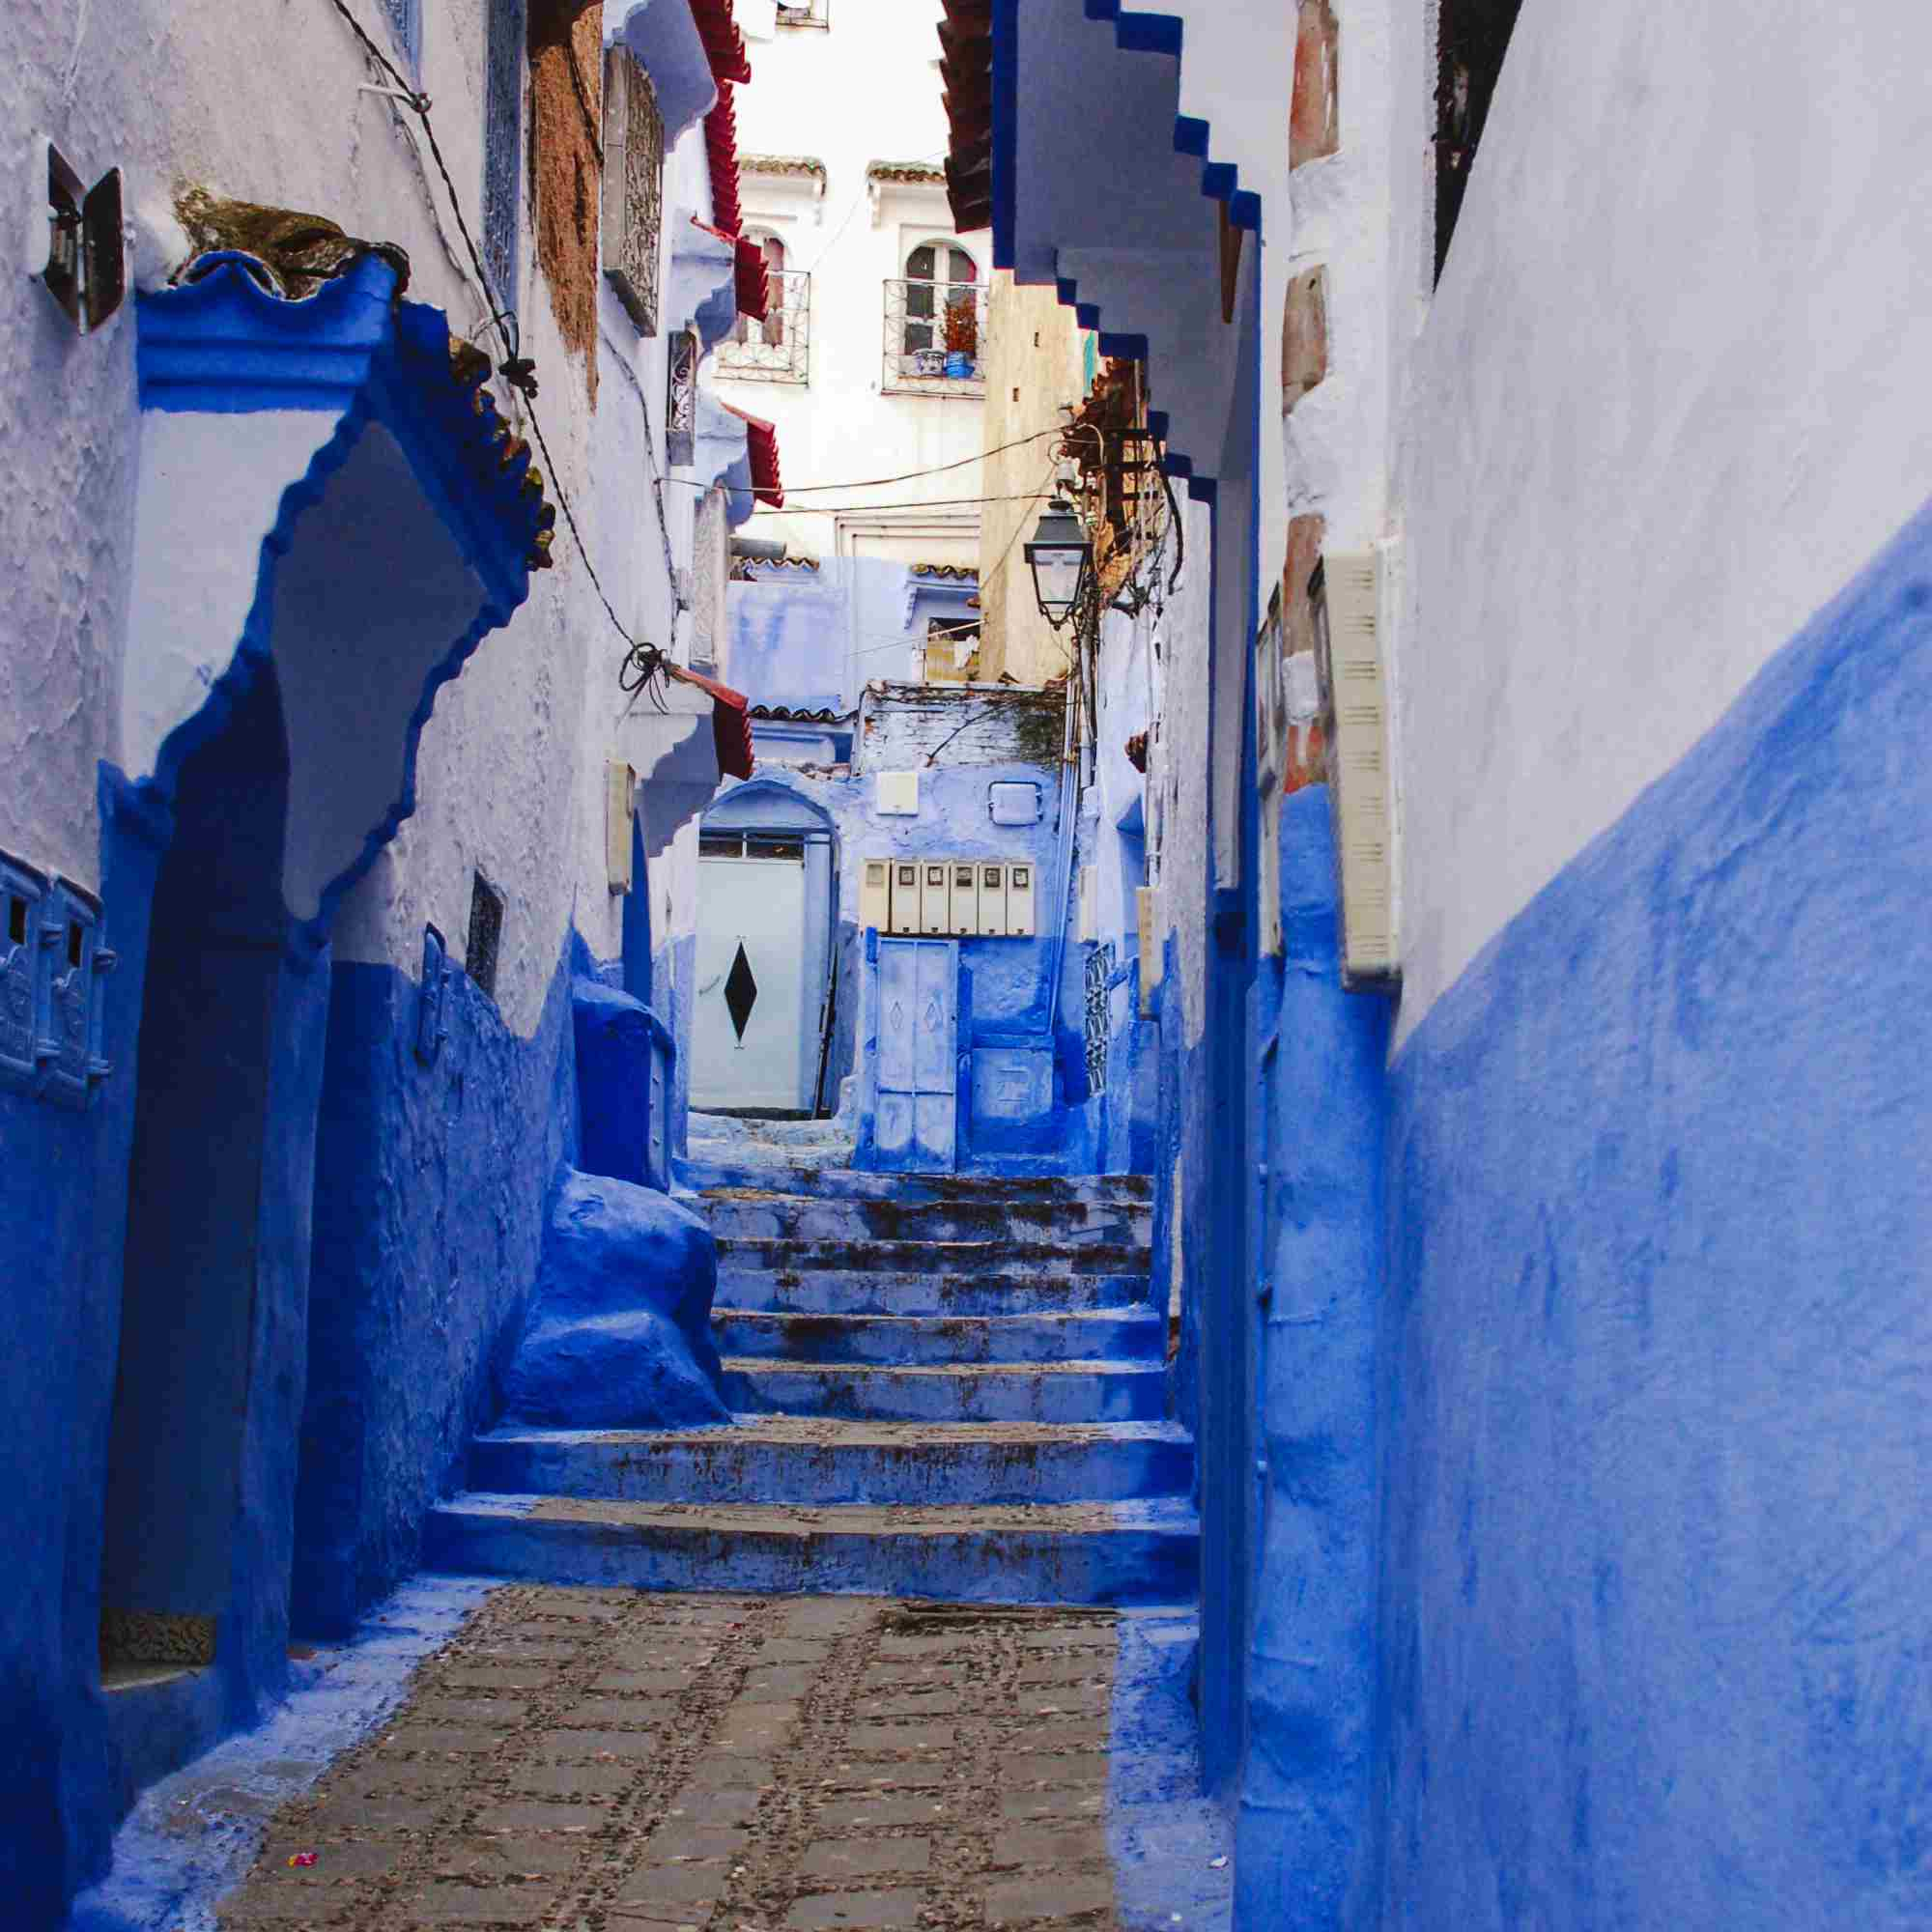 A bright blue alleyway in Chefchaeoun